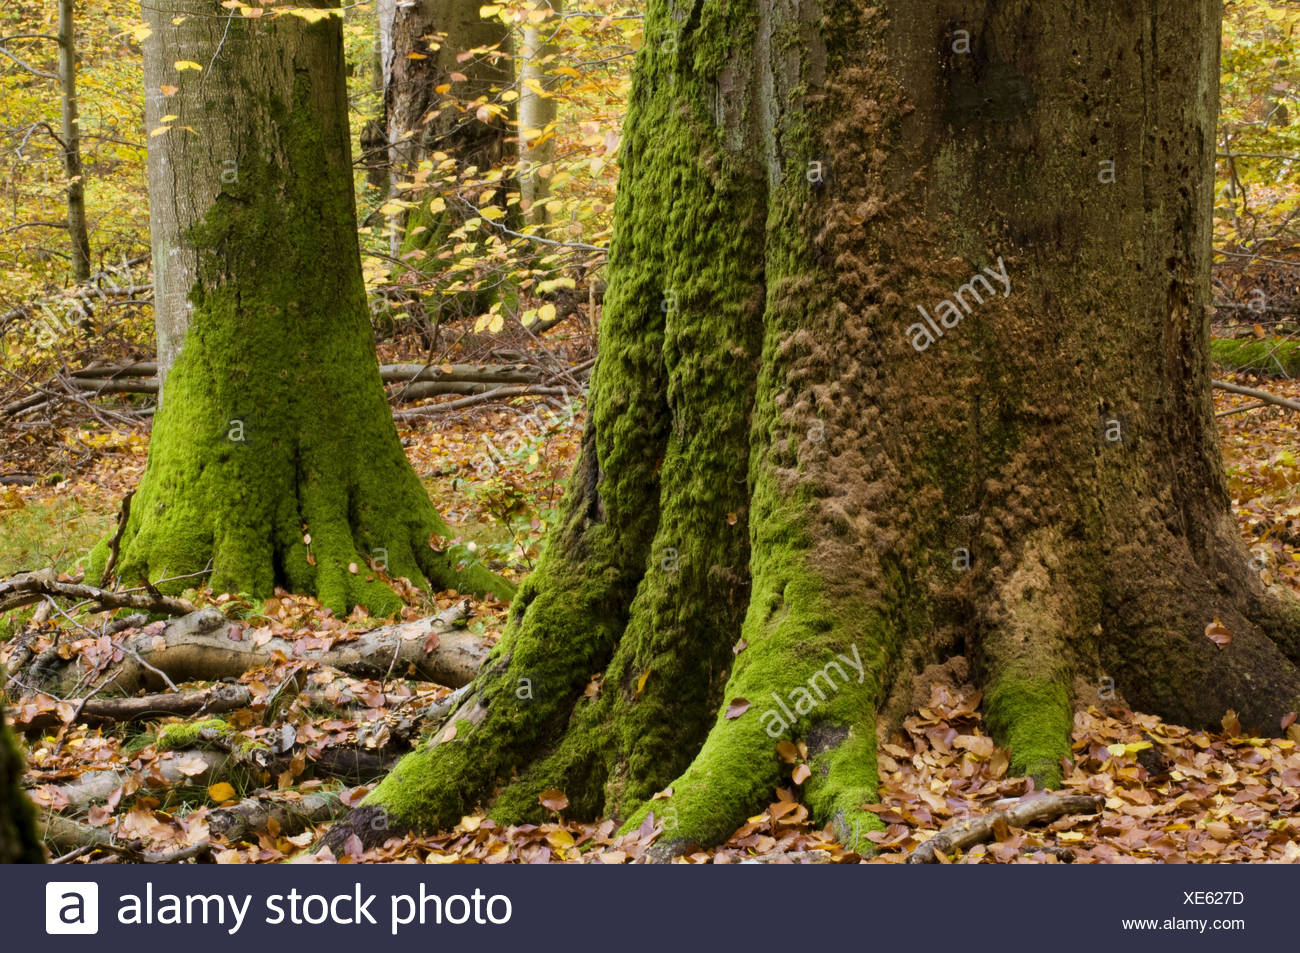 Primeval beech forest, dead trunk of a beech, covered by mosses, colours of autumn, Steigerwald, Bavaria, Germany - Stock Image